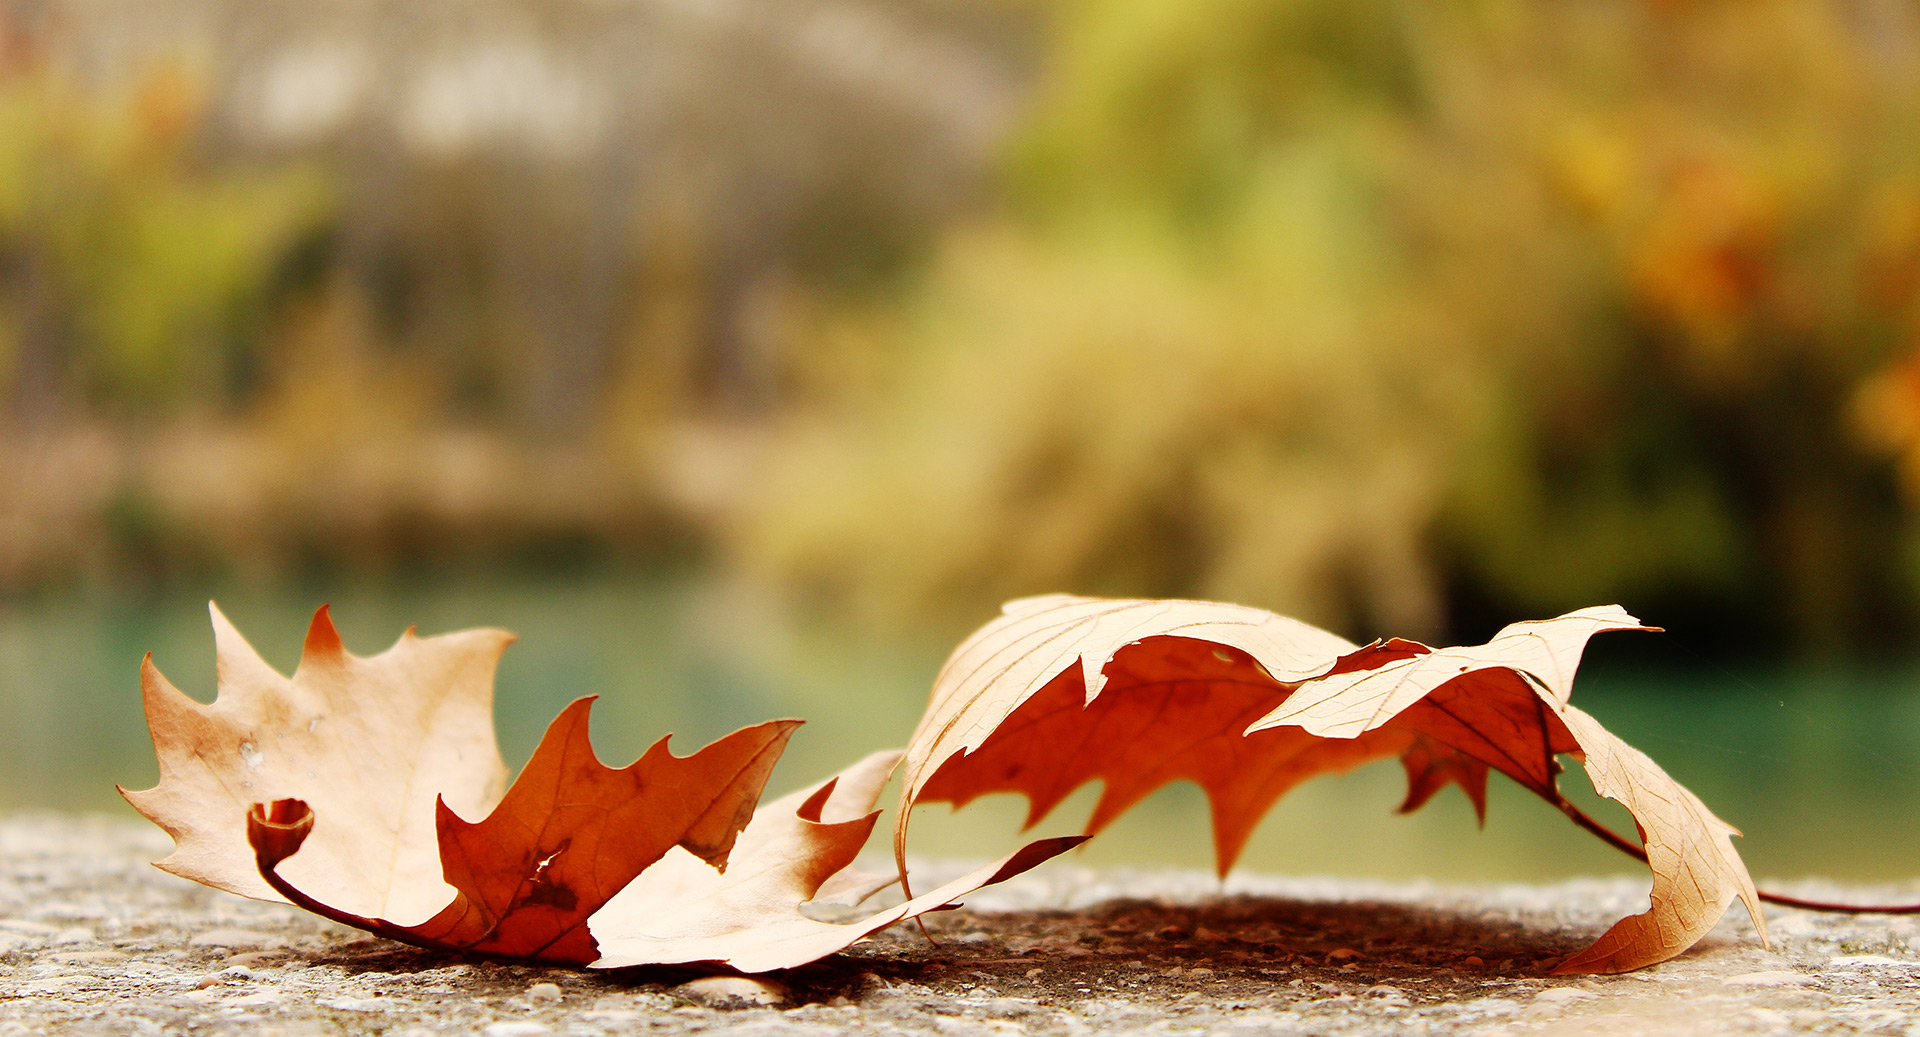 Celebrate Fall With These Orange County Events In October